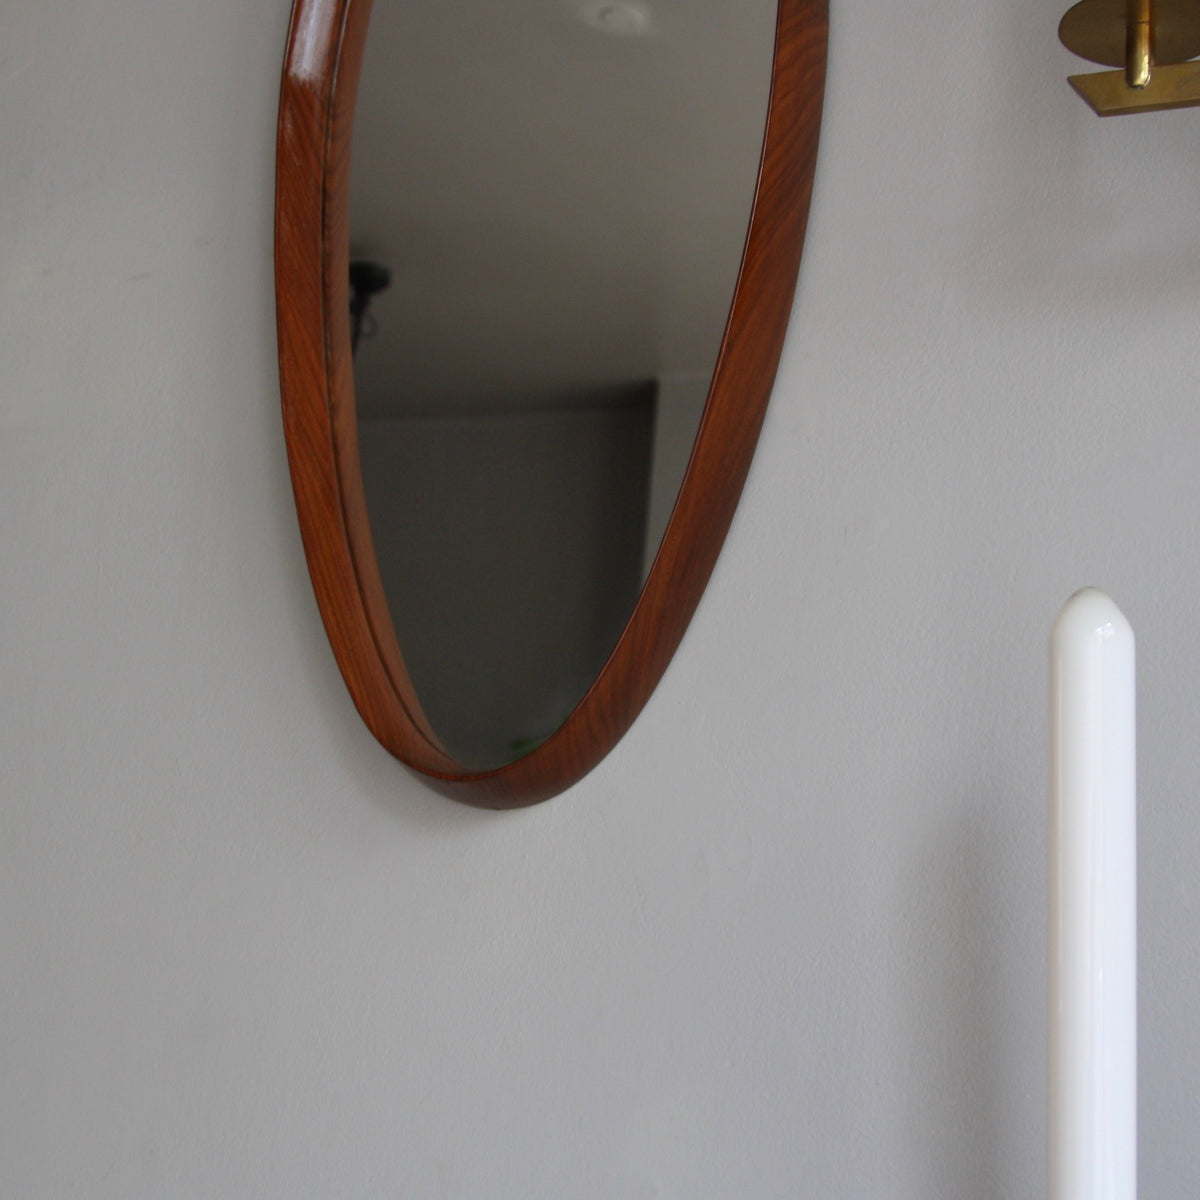 Vintage Teak Oval Mirror with Leather Denmark C. 1950 - Image 2